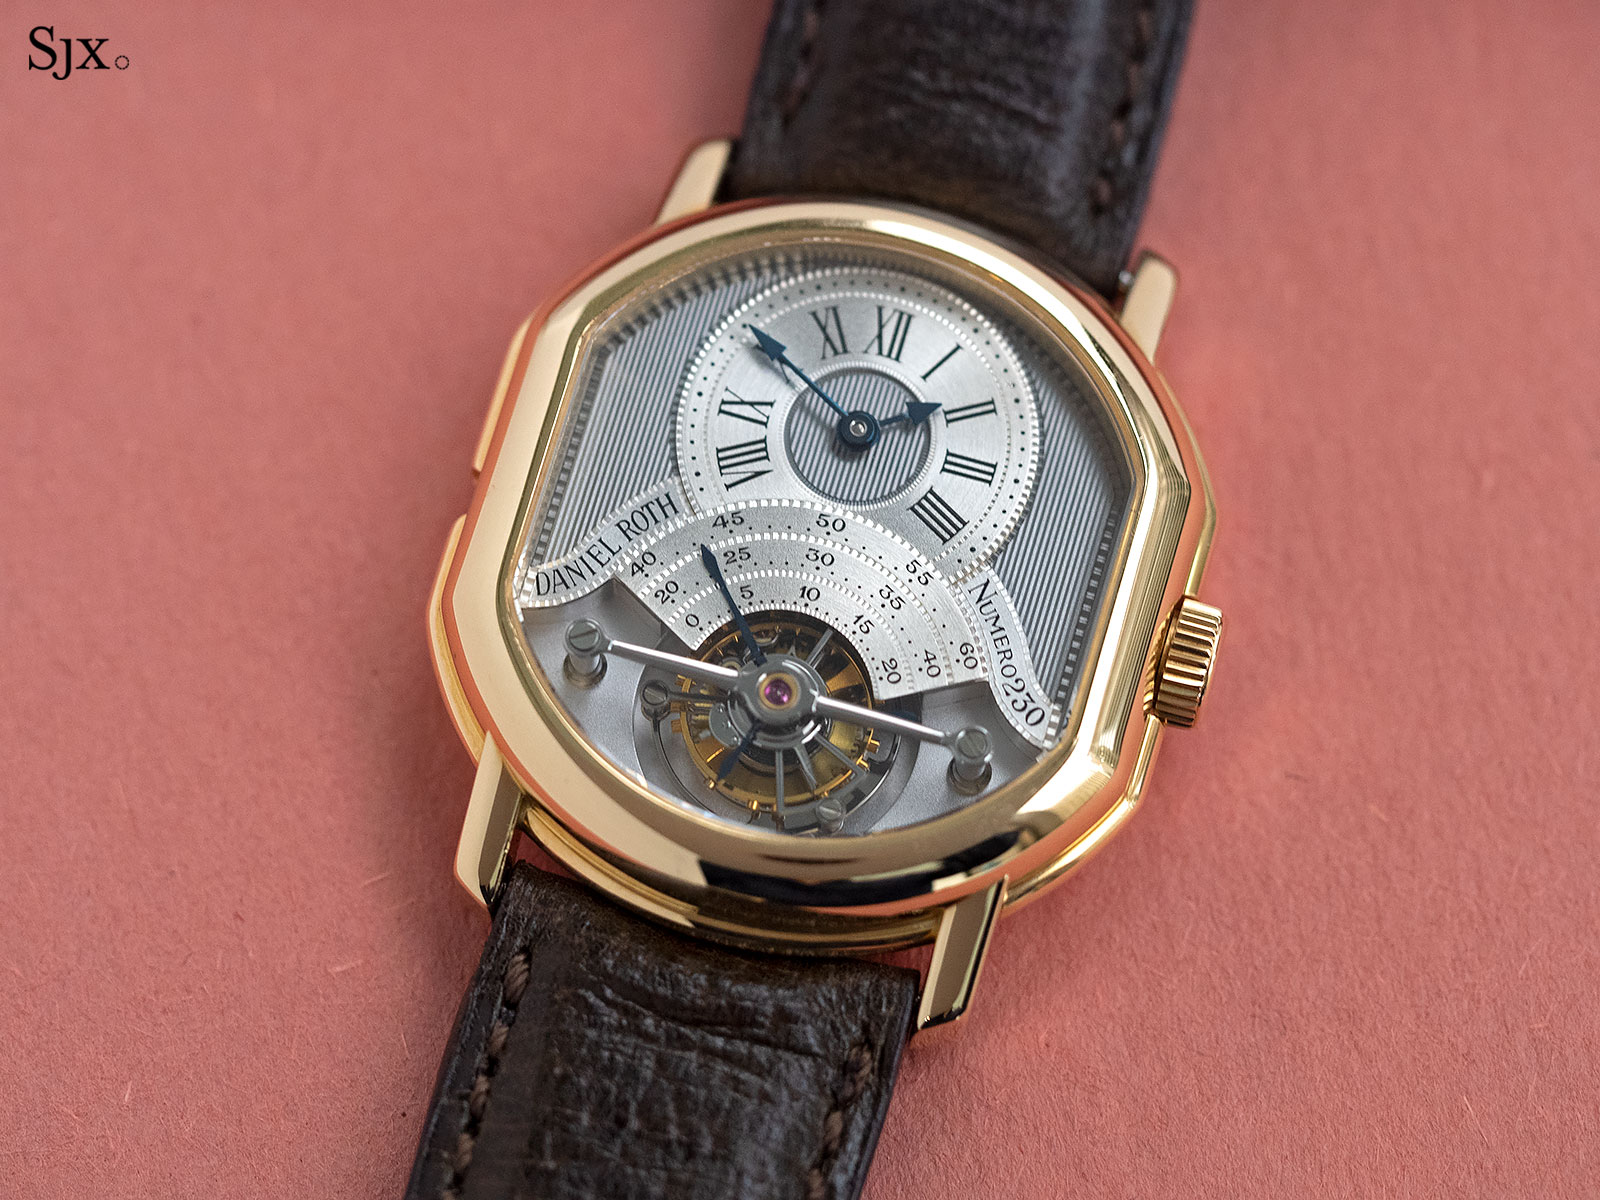 The Best Value Proposition Tourbillon in Independent Watchmaking Plus a few more at Phillips' Hong Kong. | SJX Watches